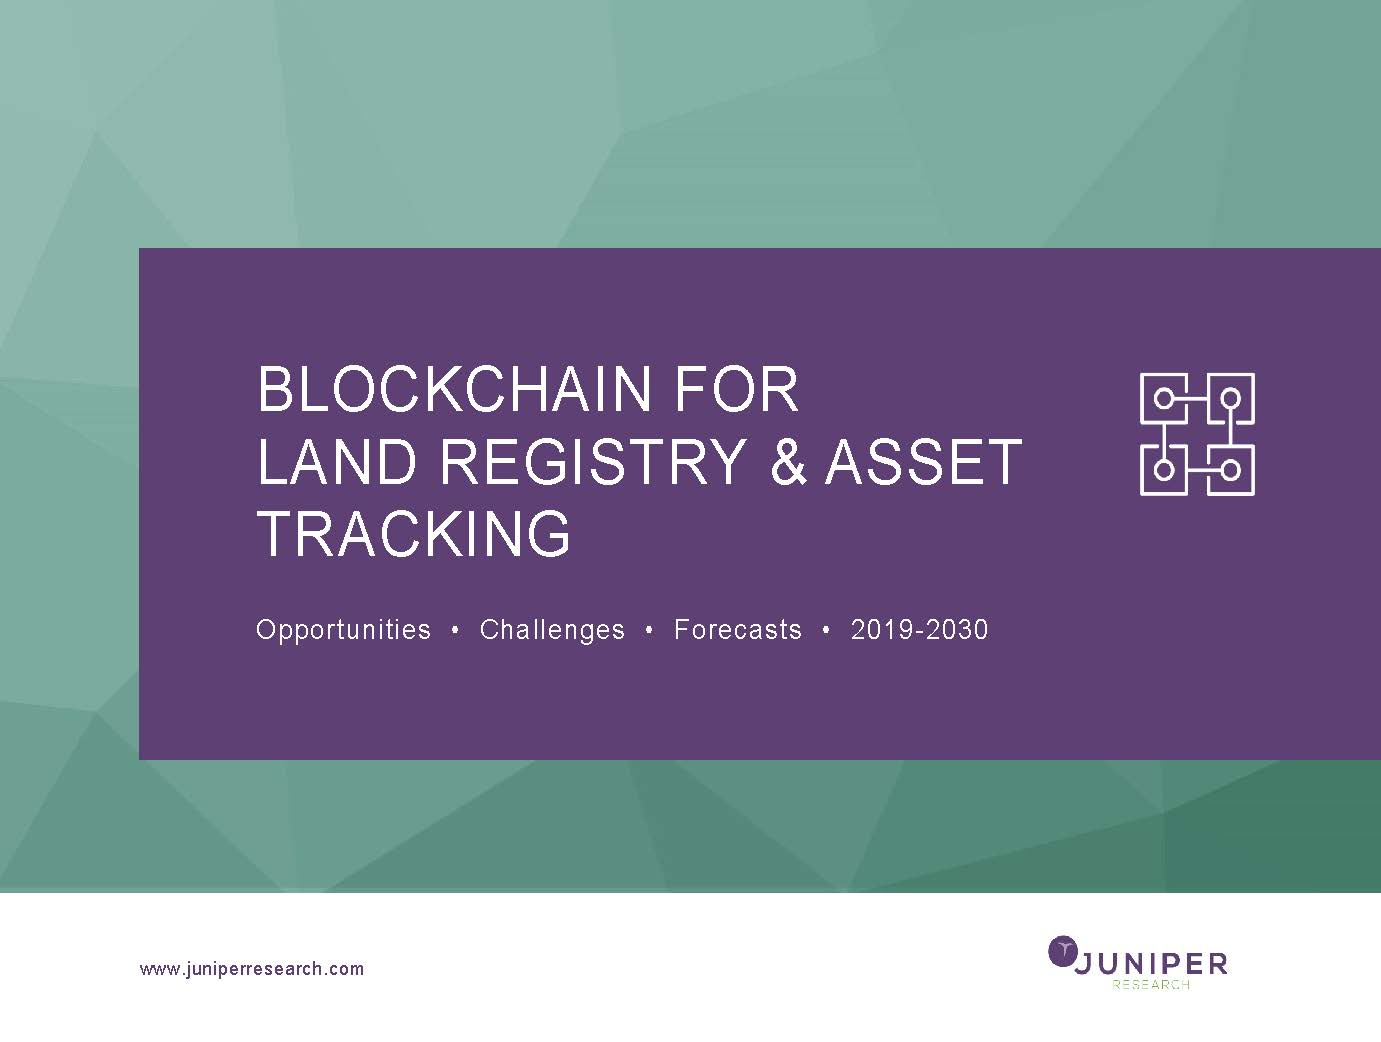 Blockchain for Land Registry & Asset Tracking